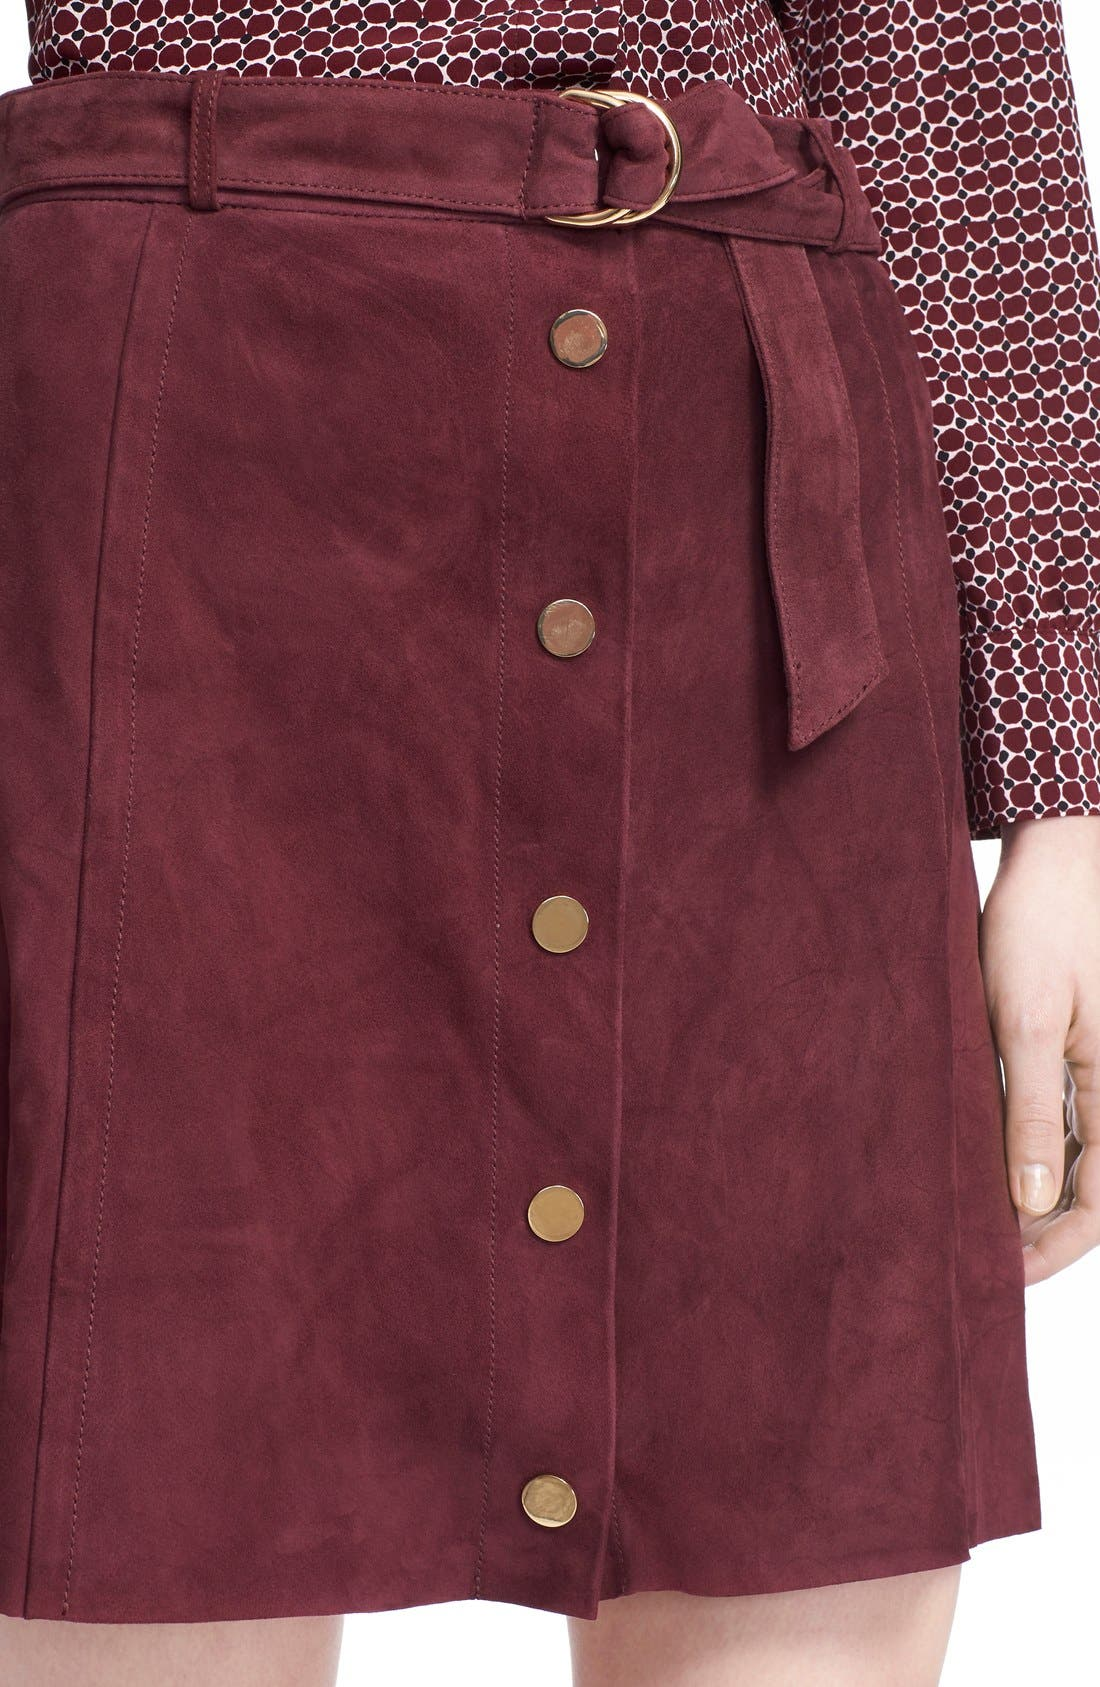 belted suede a-line skirt,                             Alternate thumbnail 5, color,                             619